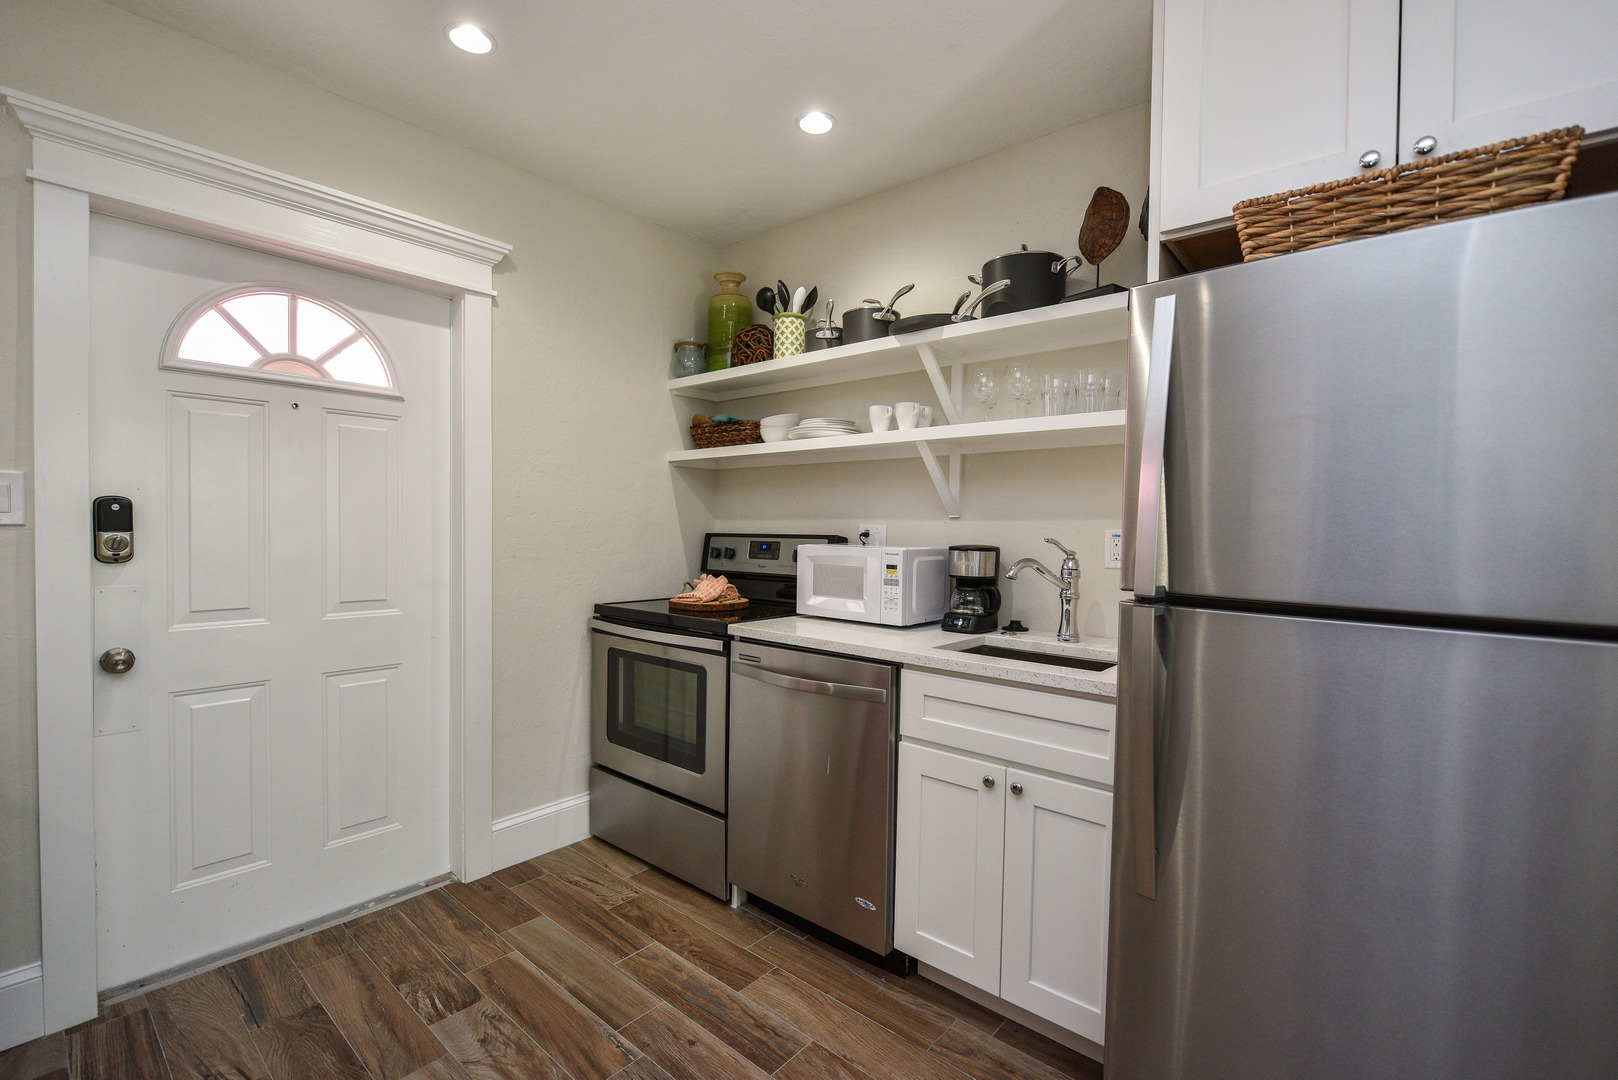 Stainless Appliances and Open Cabinetry